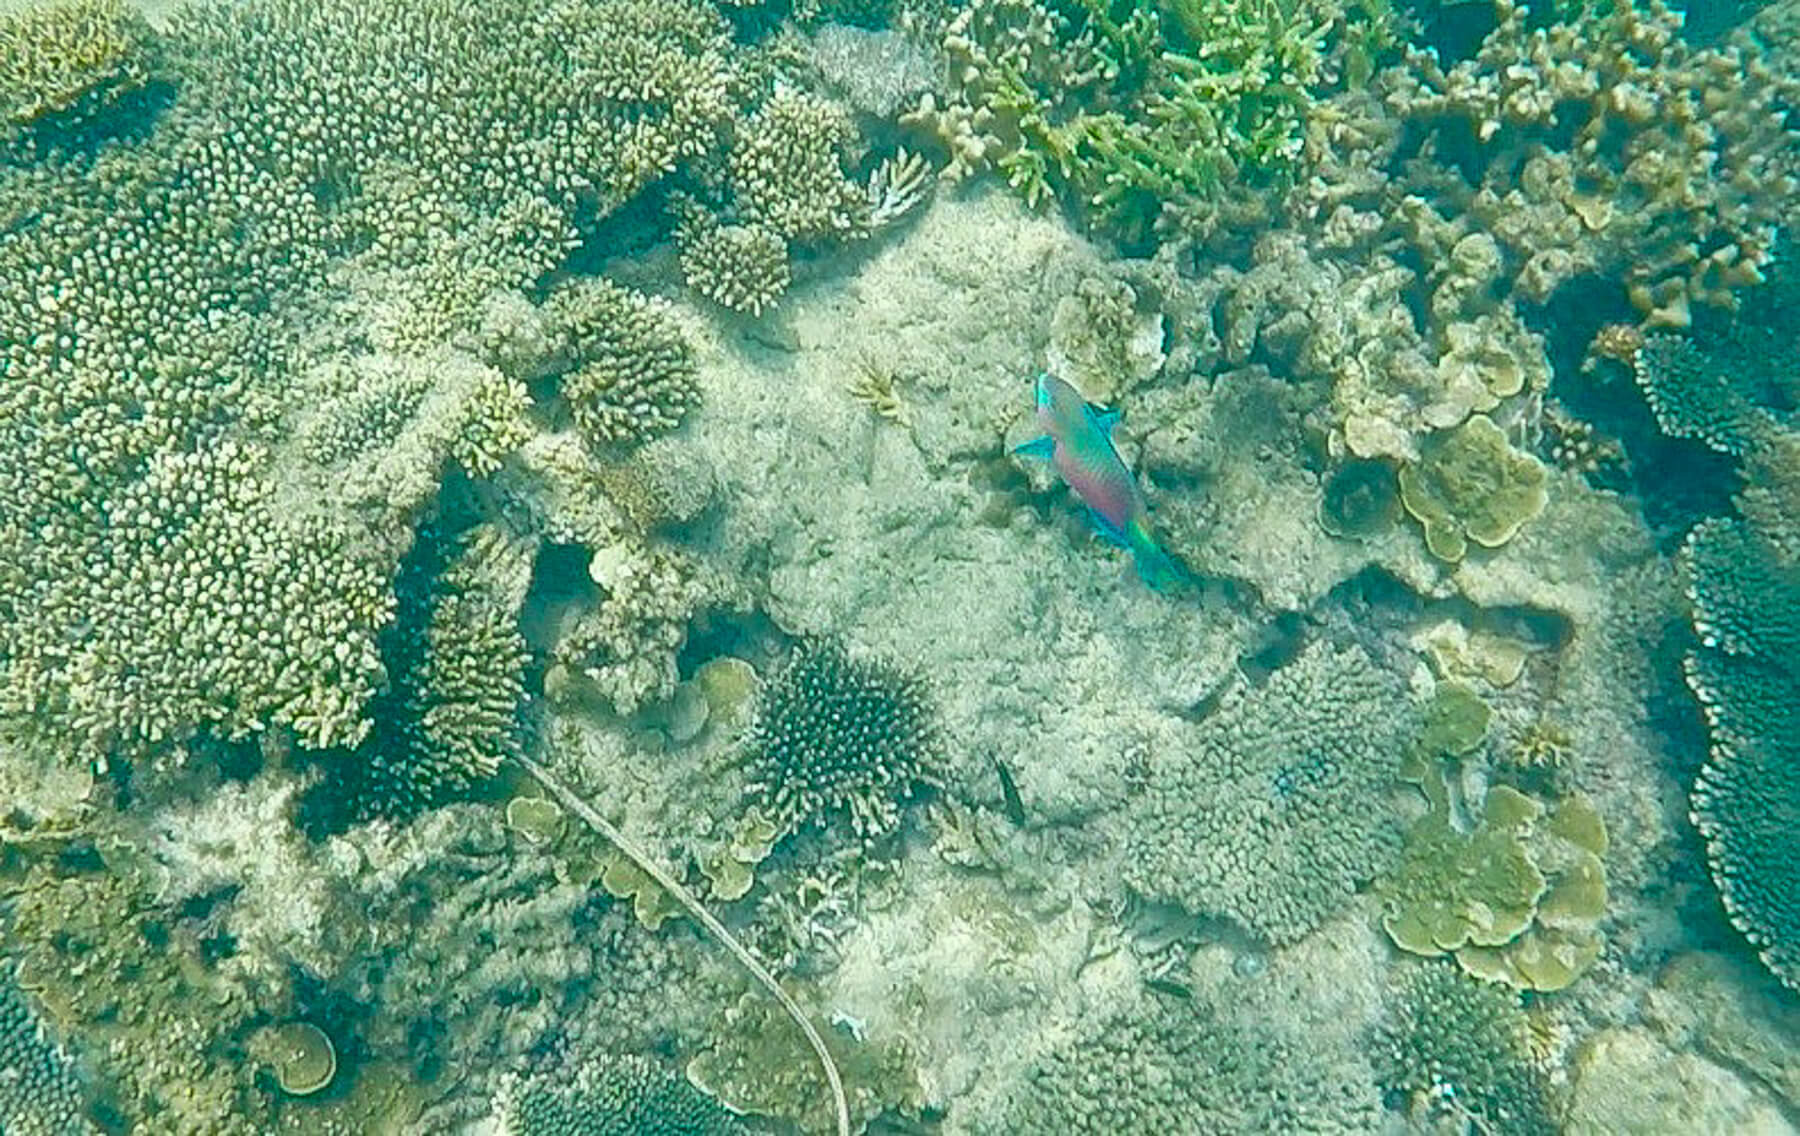 Looking underneath the ocean at a rainbow fish swimming amongst coral